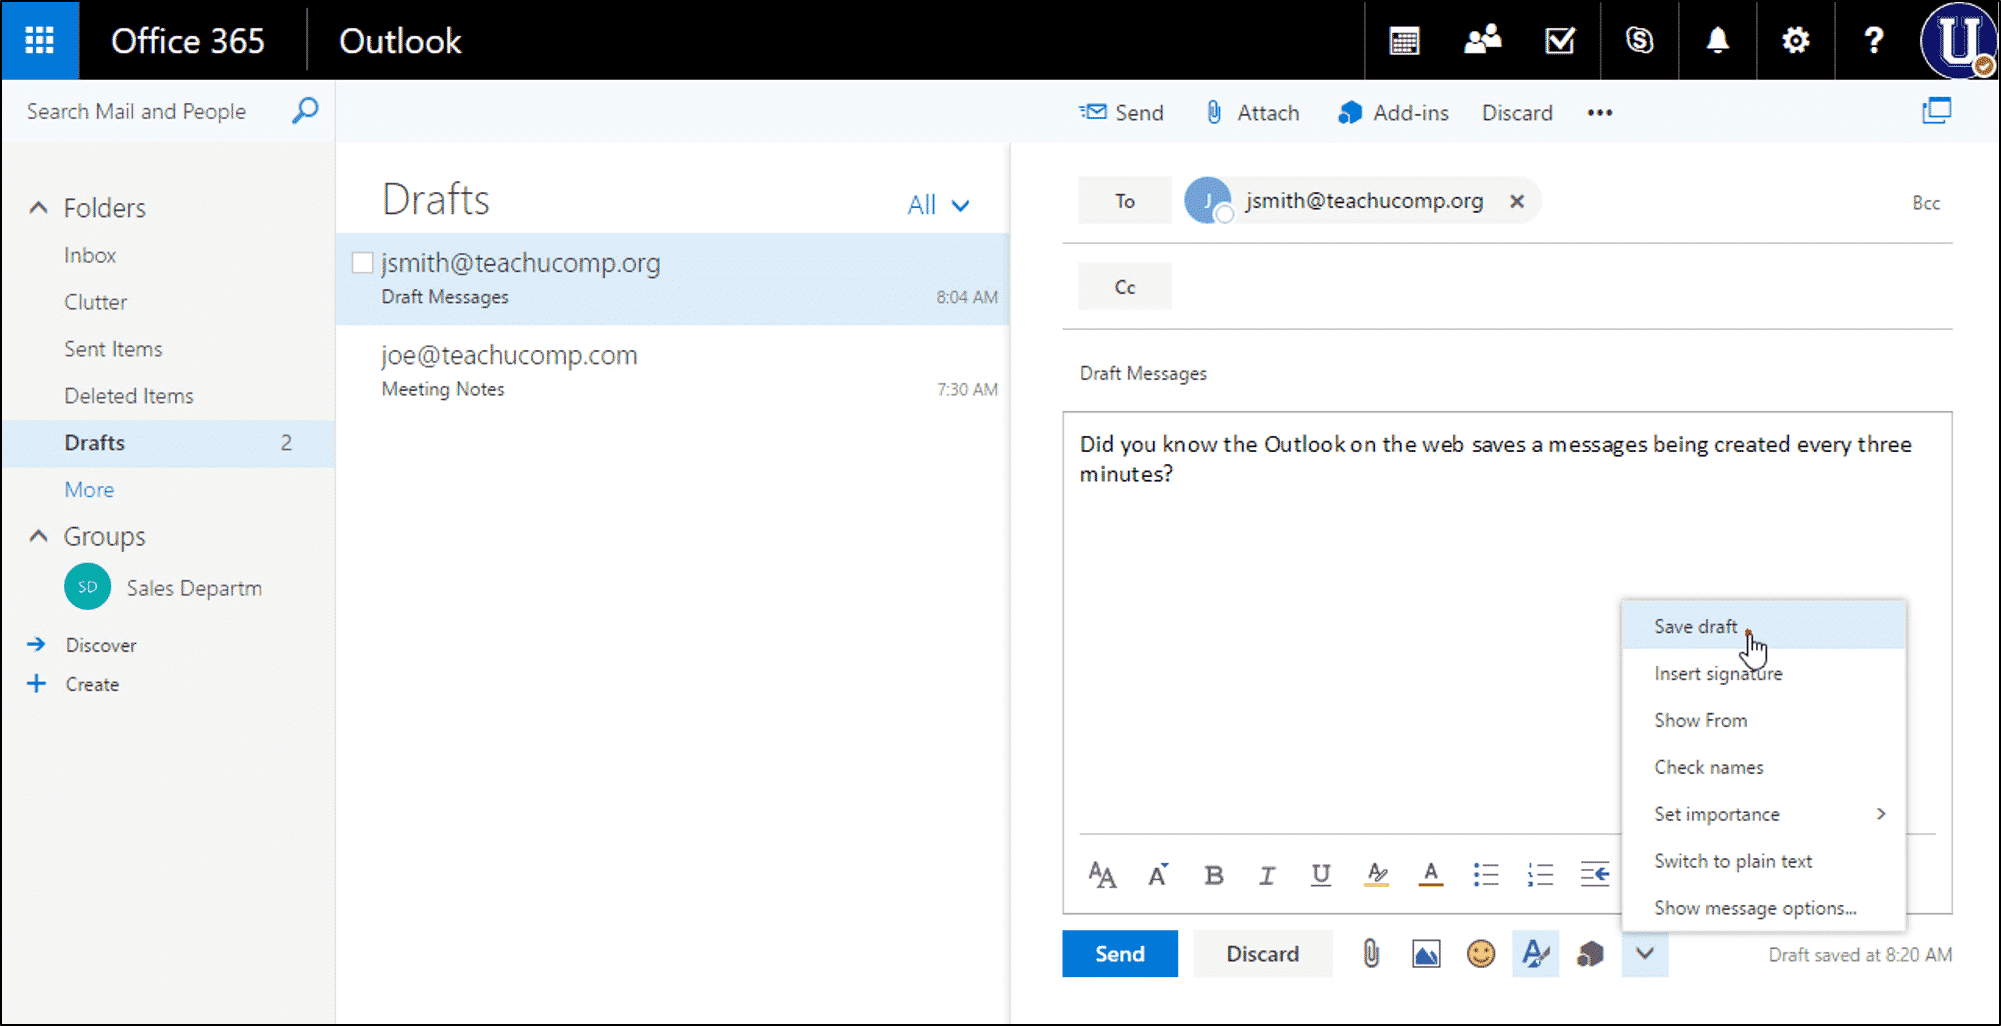 Save a Draft Message in Outlook on the Web - Instructions